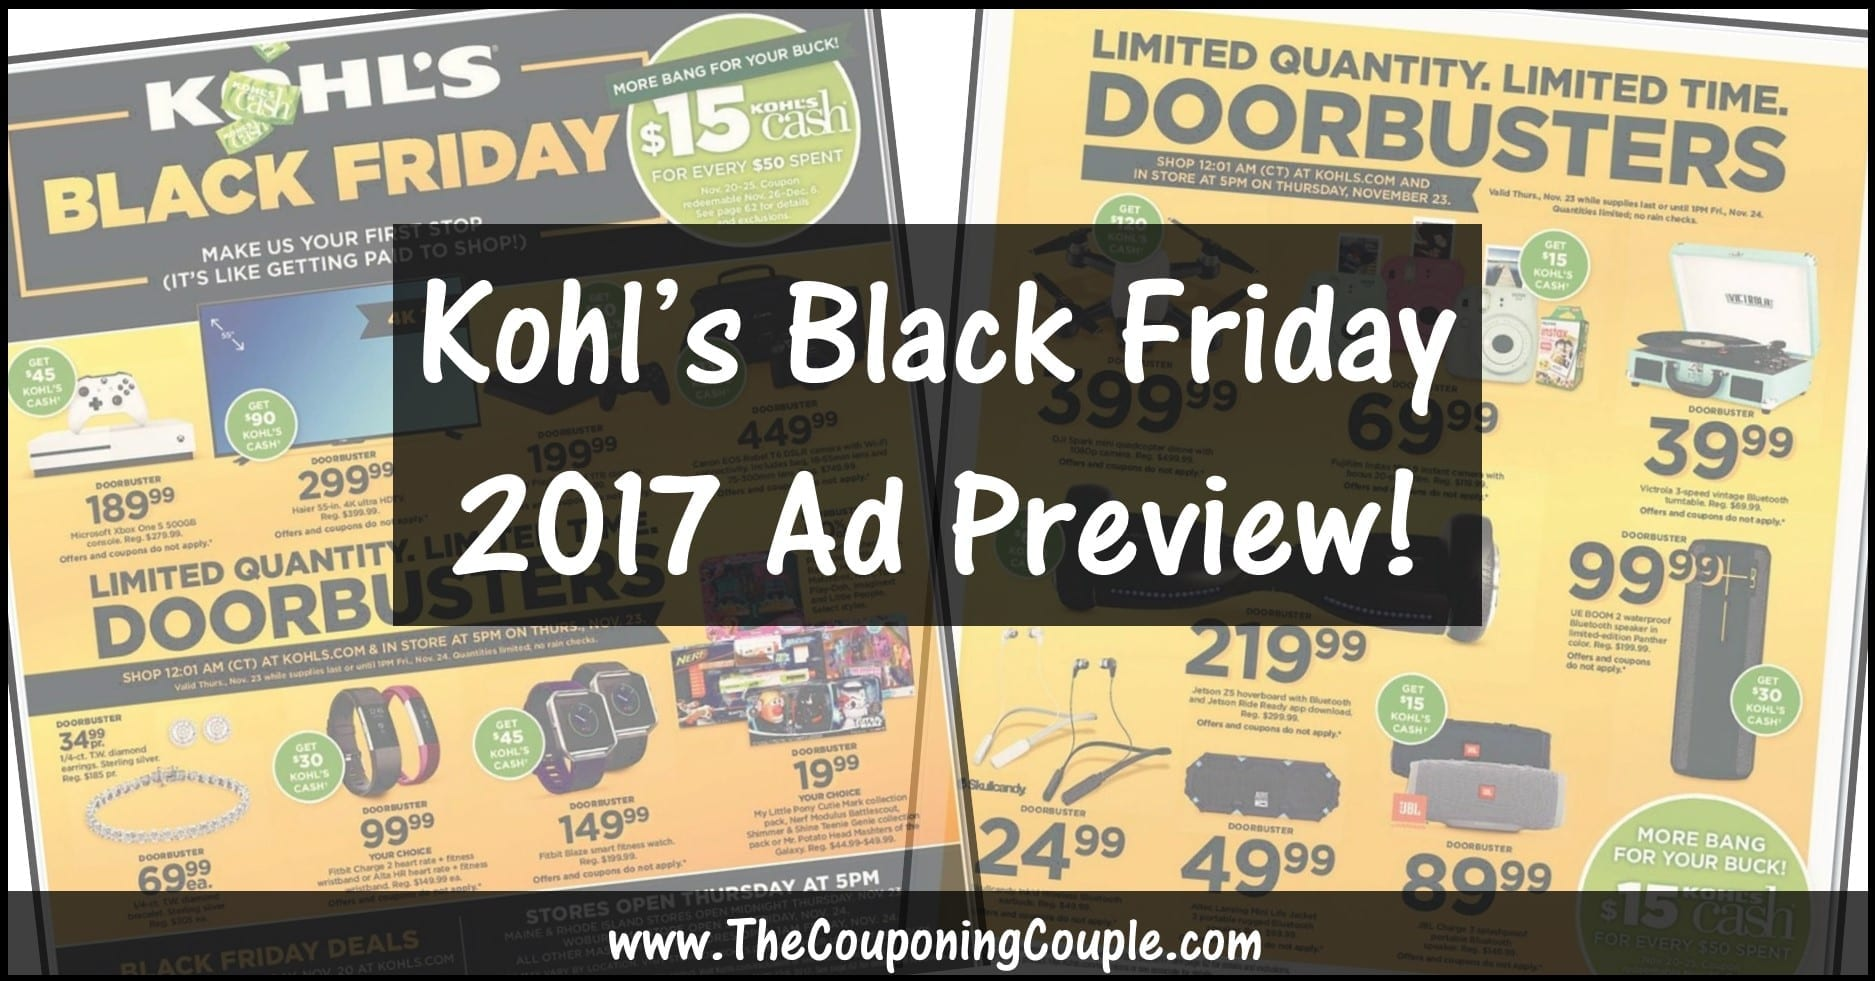 Black Friday Frankfurt 2017 Kohls Black Friday Ad 2017 Browse All 64 Pages Of The Ad